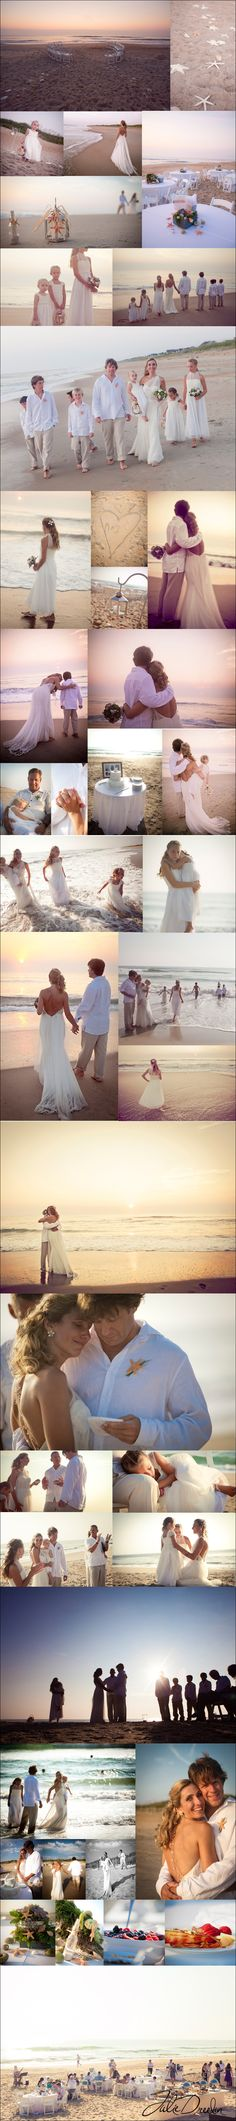 Julie Dreelins Beach Productions photographs a gorgeous beach wedding sunrise at the Sanderling Resort in Duck, NC. (This is the wedding of one very special woman who helped me find my dream dress! Her wedding truly was a dream come true for her, the photos tell the perfect story of the day!)